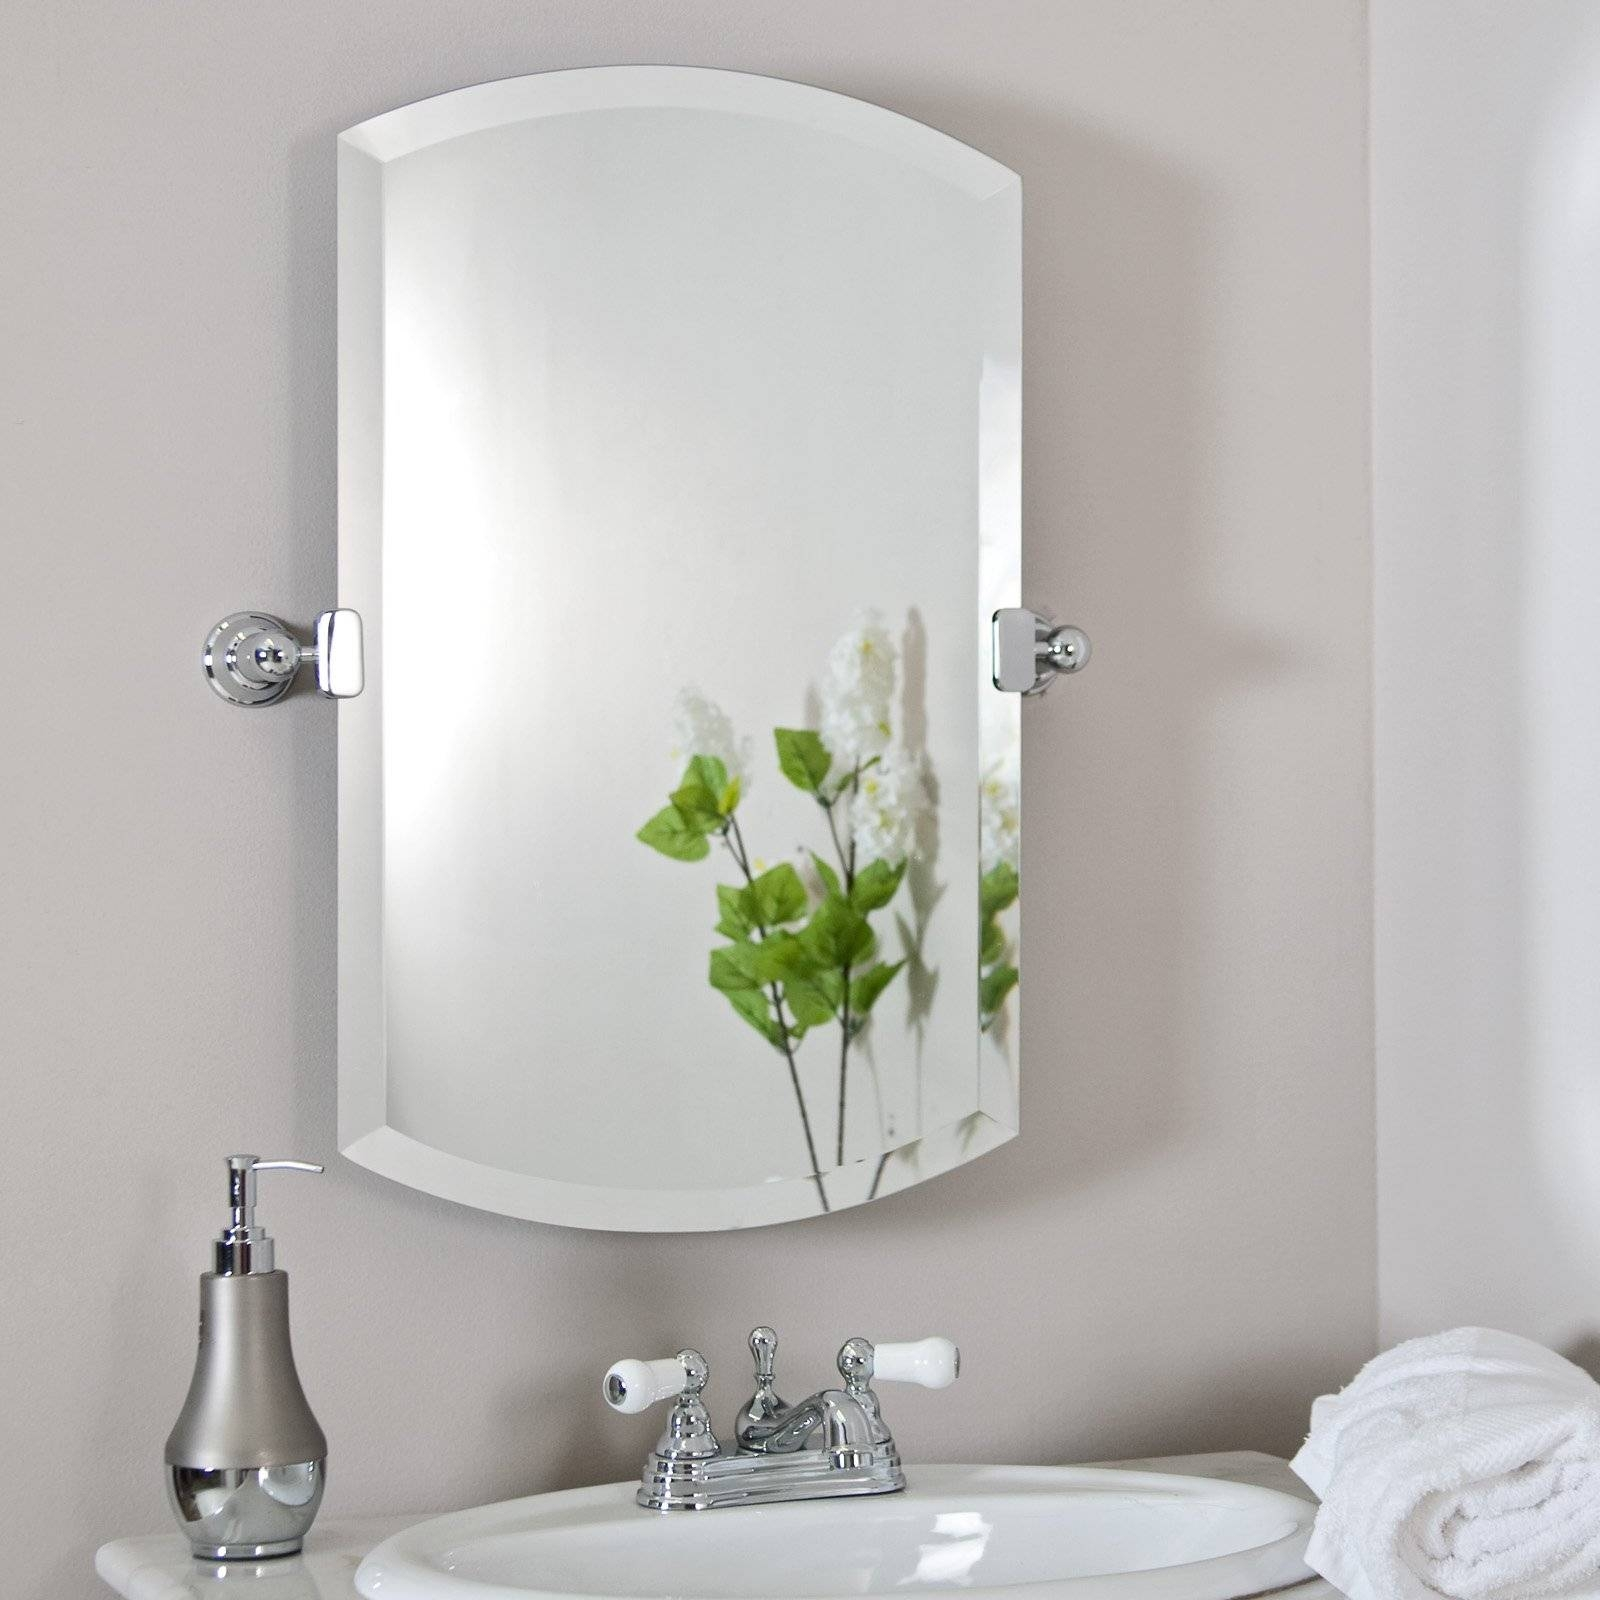 Decorative Round Mirrors For Walls Ceiling Mirror Large Wooden for Pretty Mirrors For Walls (Image 10 of 15)